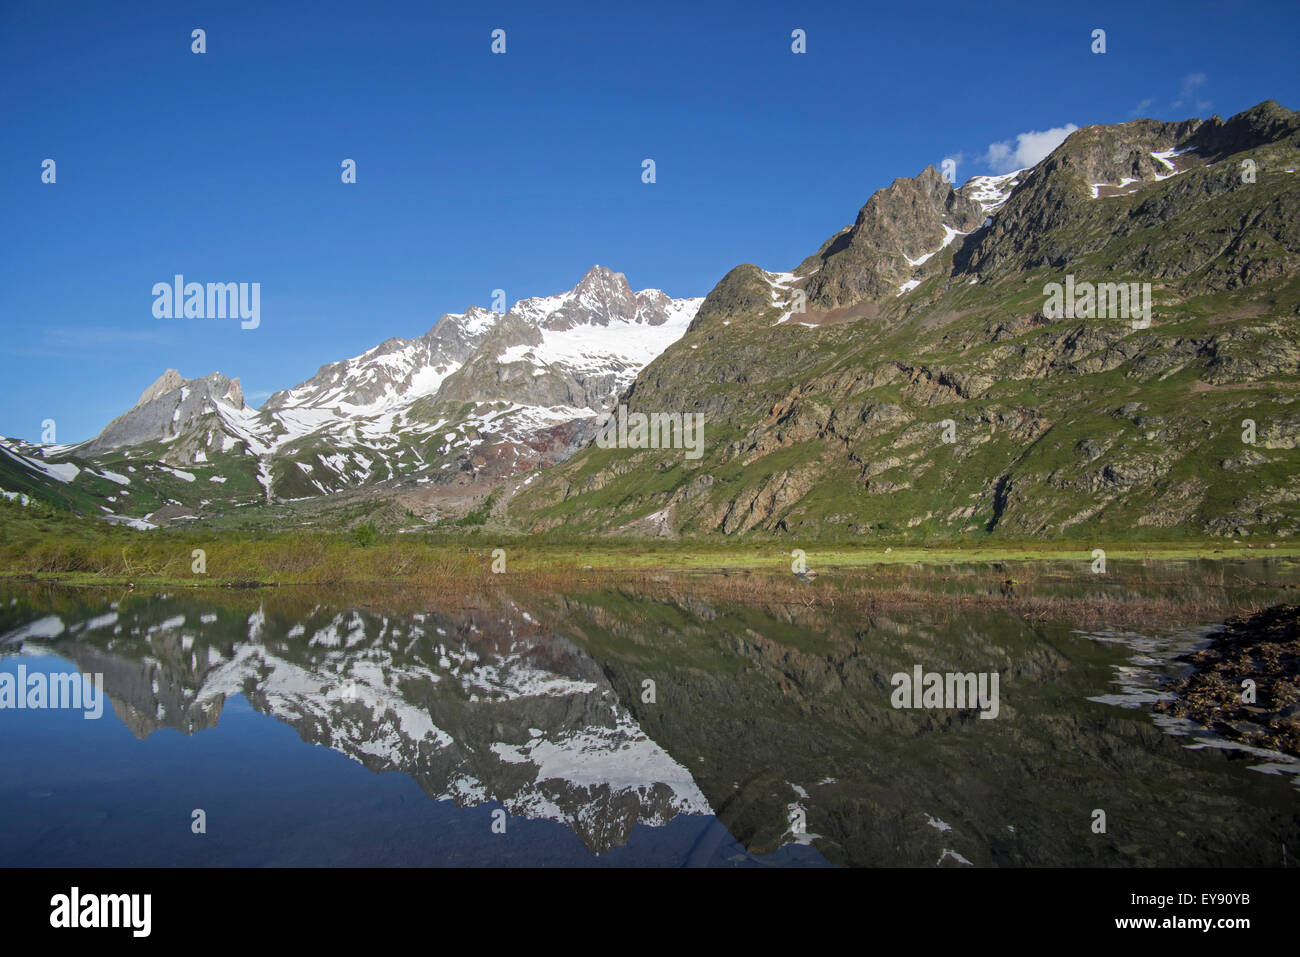 Reflection of mountains of the Mont Blanc massif and the Limestone Pyramids in  Lago Combal lake, Val Veny, Italian - Stock Image